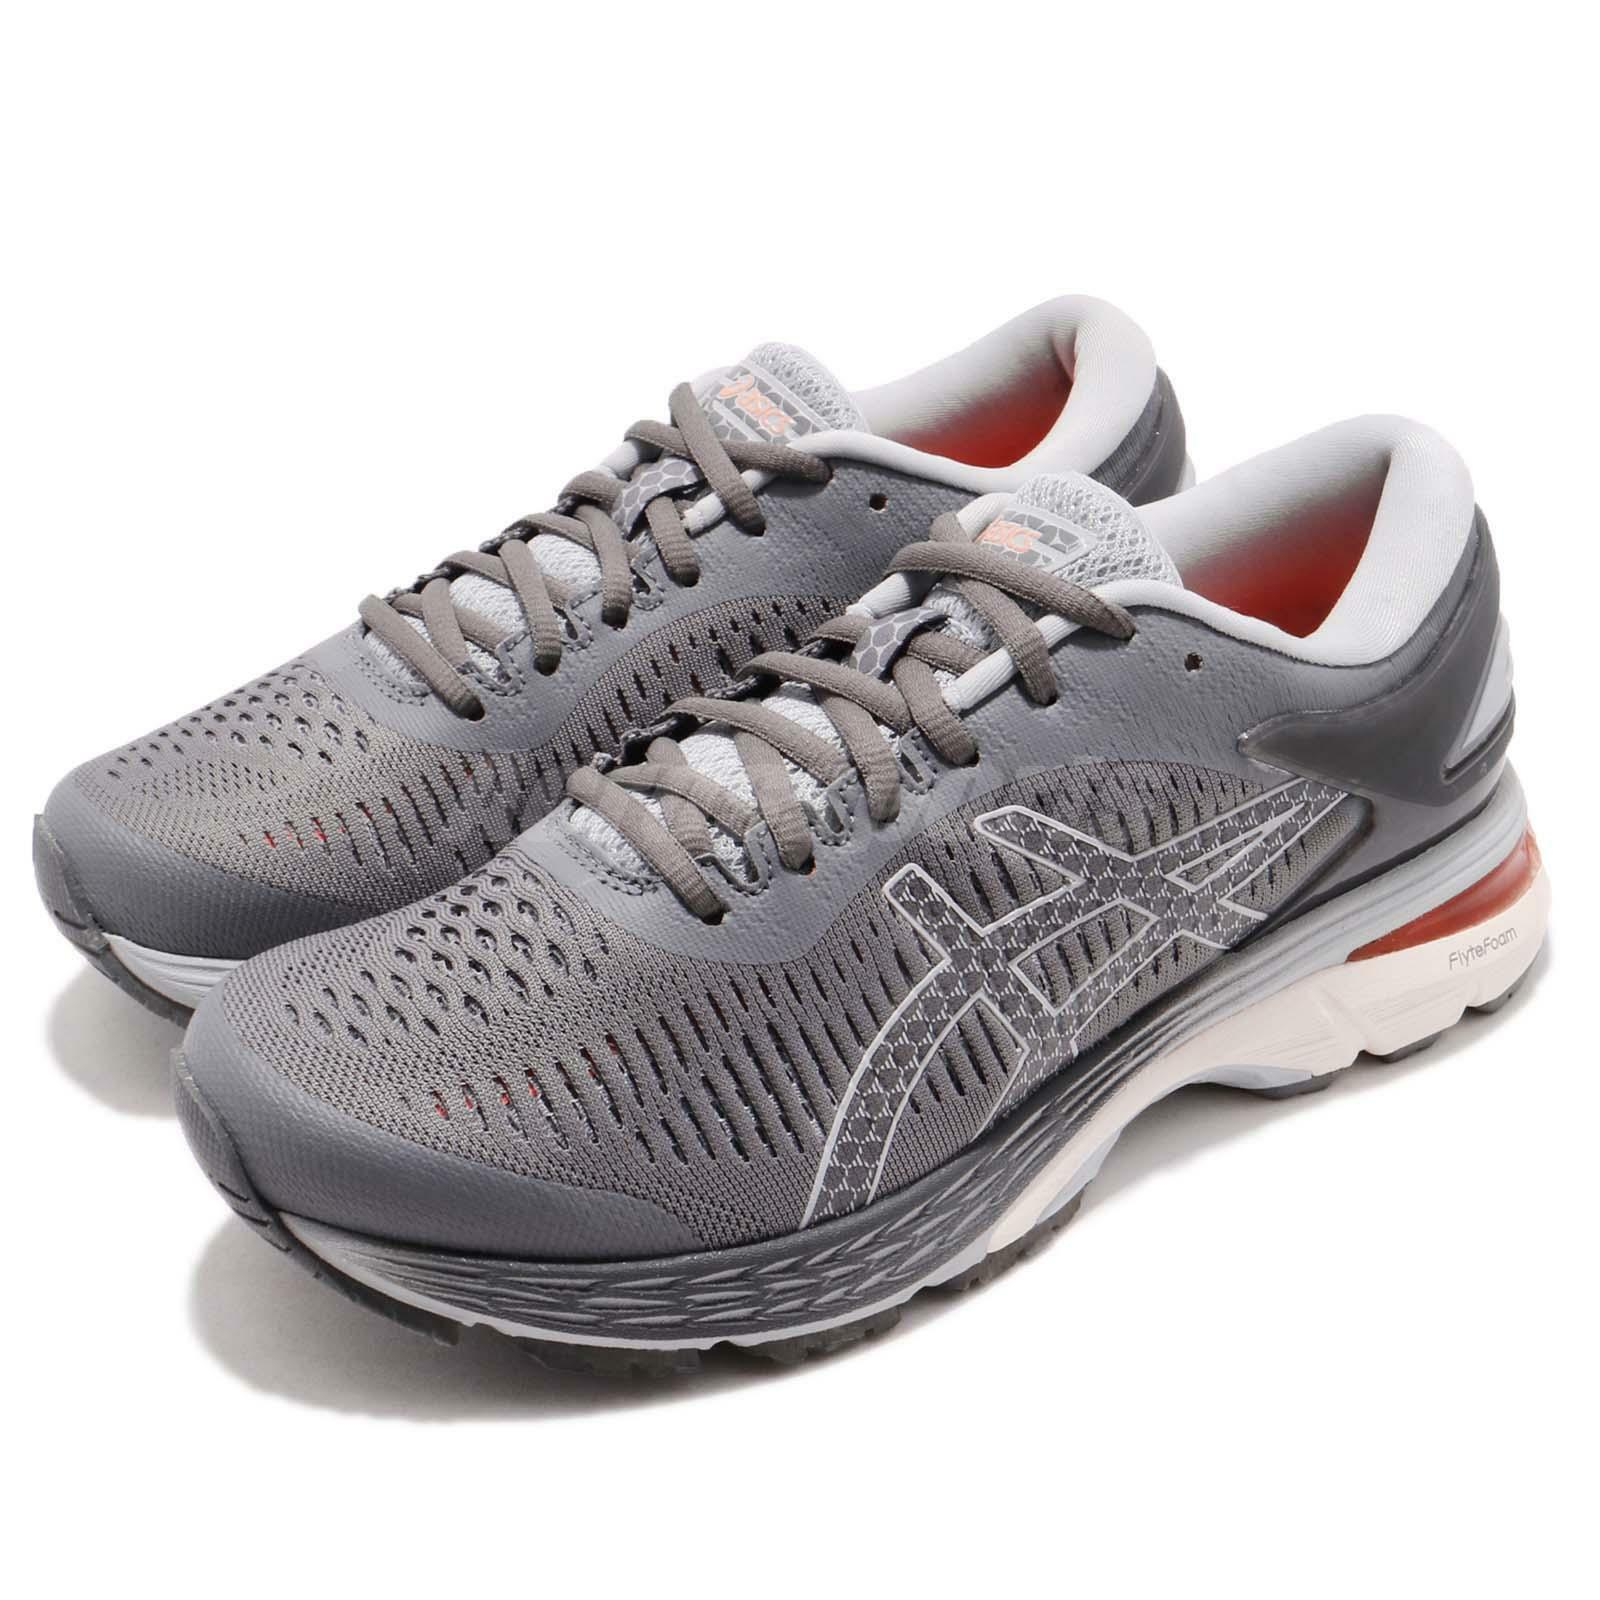 Asics Gel-Kayano 25 Carbon Grey White Women Running Shoes Sneakers 1012A026-020